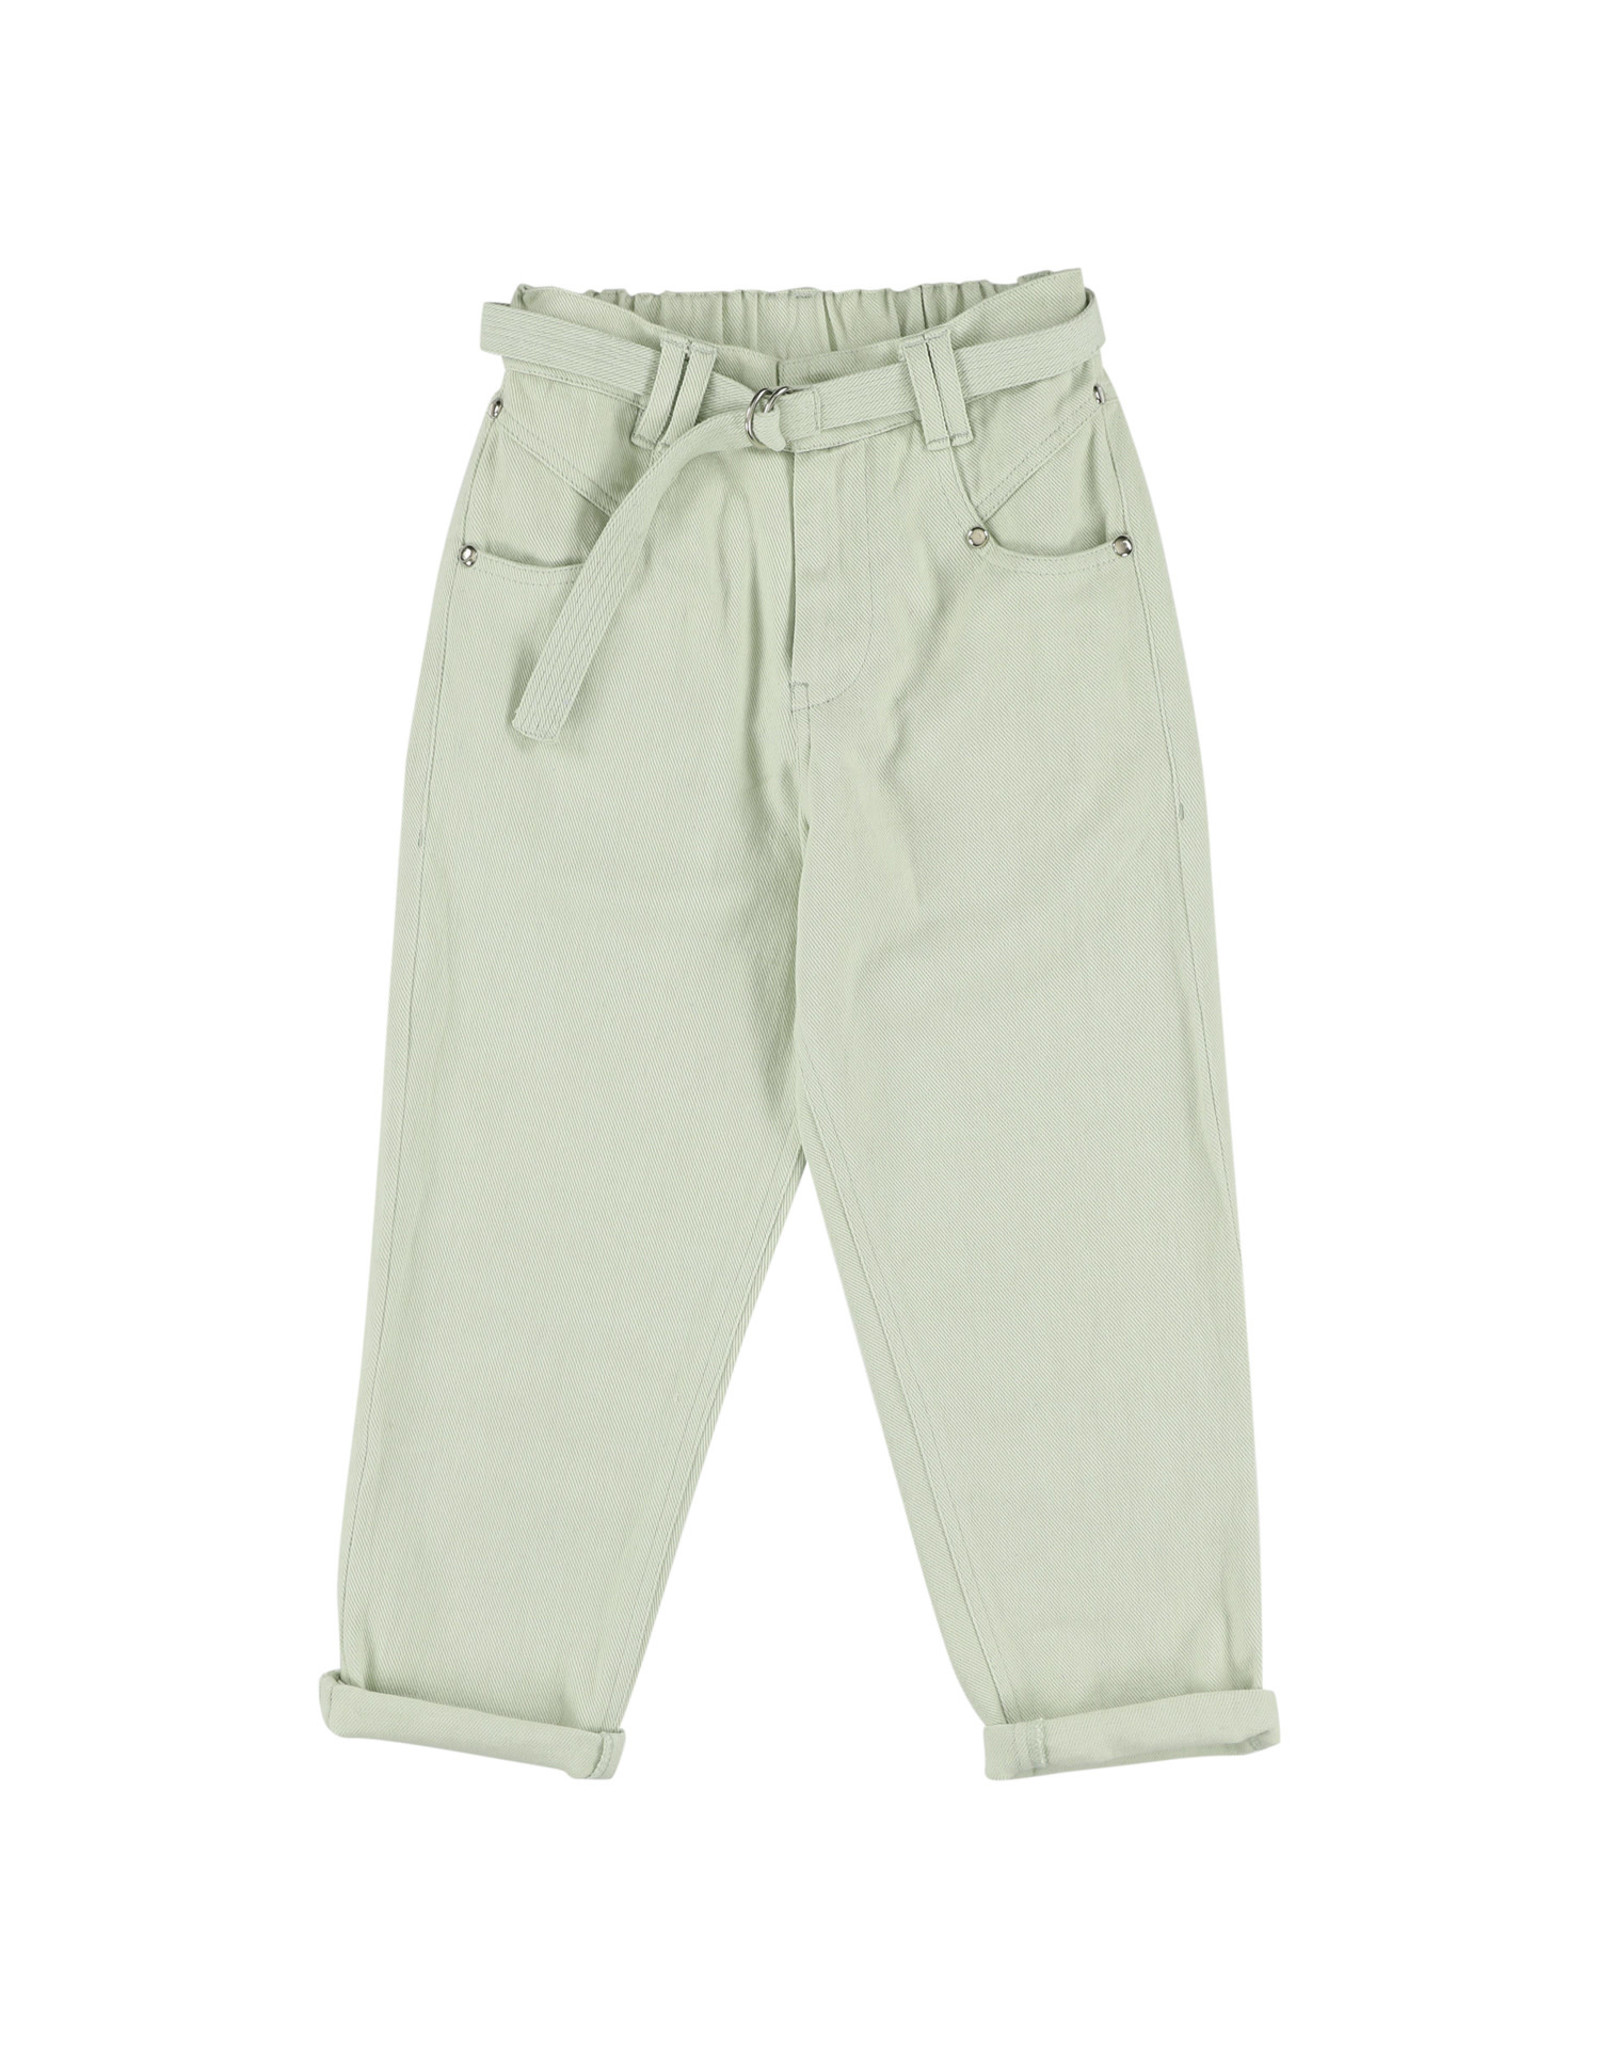 Simple Kids Basile Drill mint trousers